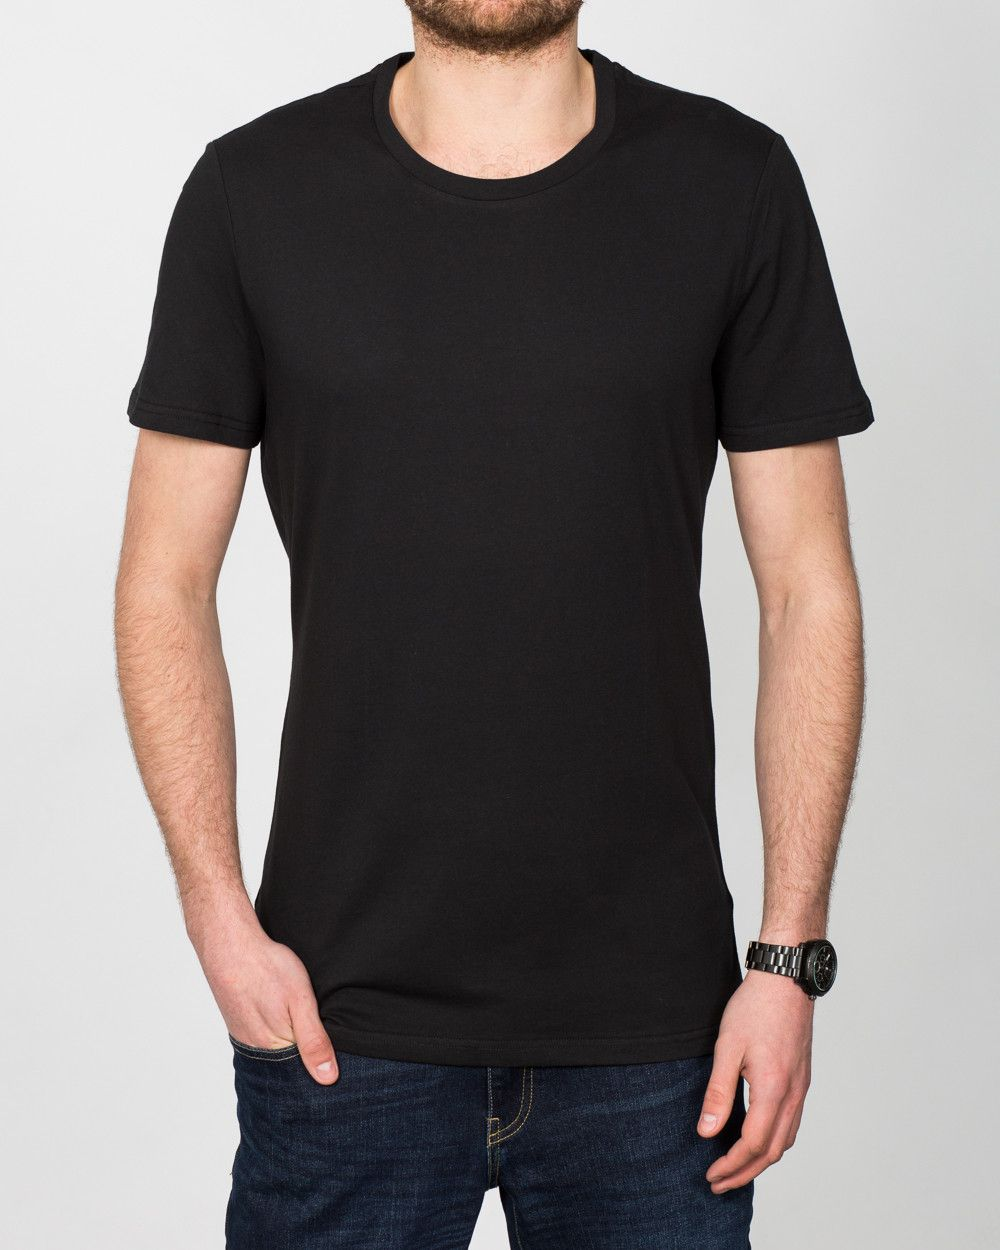 01d4848fde2c 2t Tall T-Shirt (black) | Extra Long Tall Mens Clothing | Suits | Tall Mens  Jeans | Shirts | Size 13-18 Shoes #tallmen #fashion